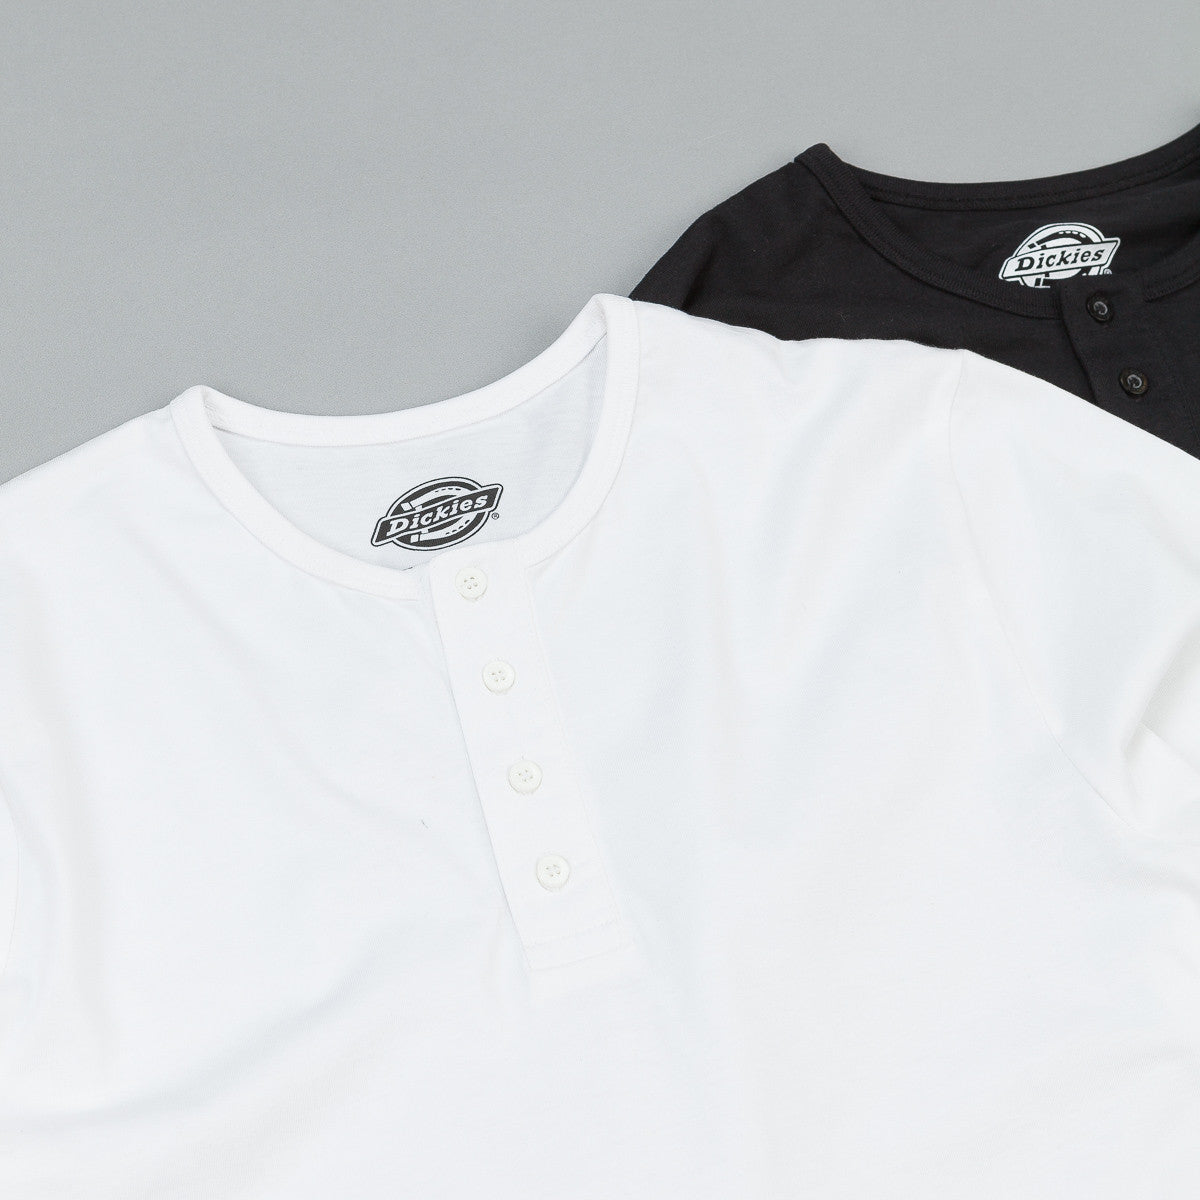 Dickies Seibert Henley Two Pack - Black / White